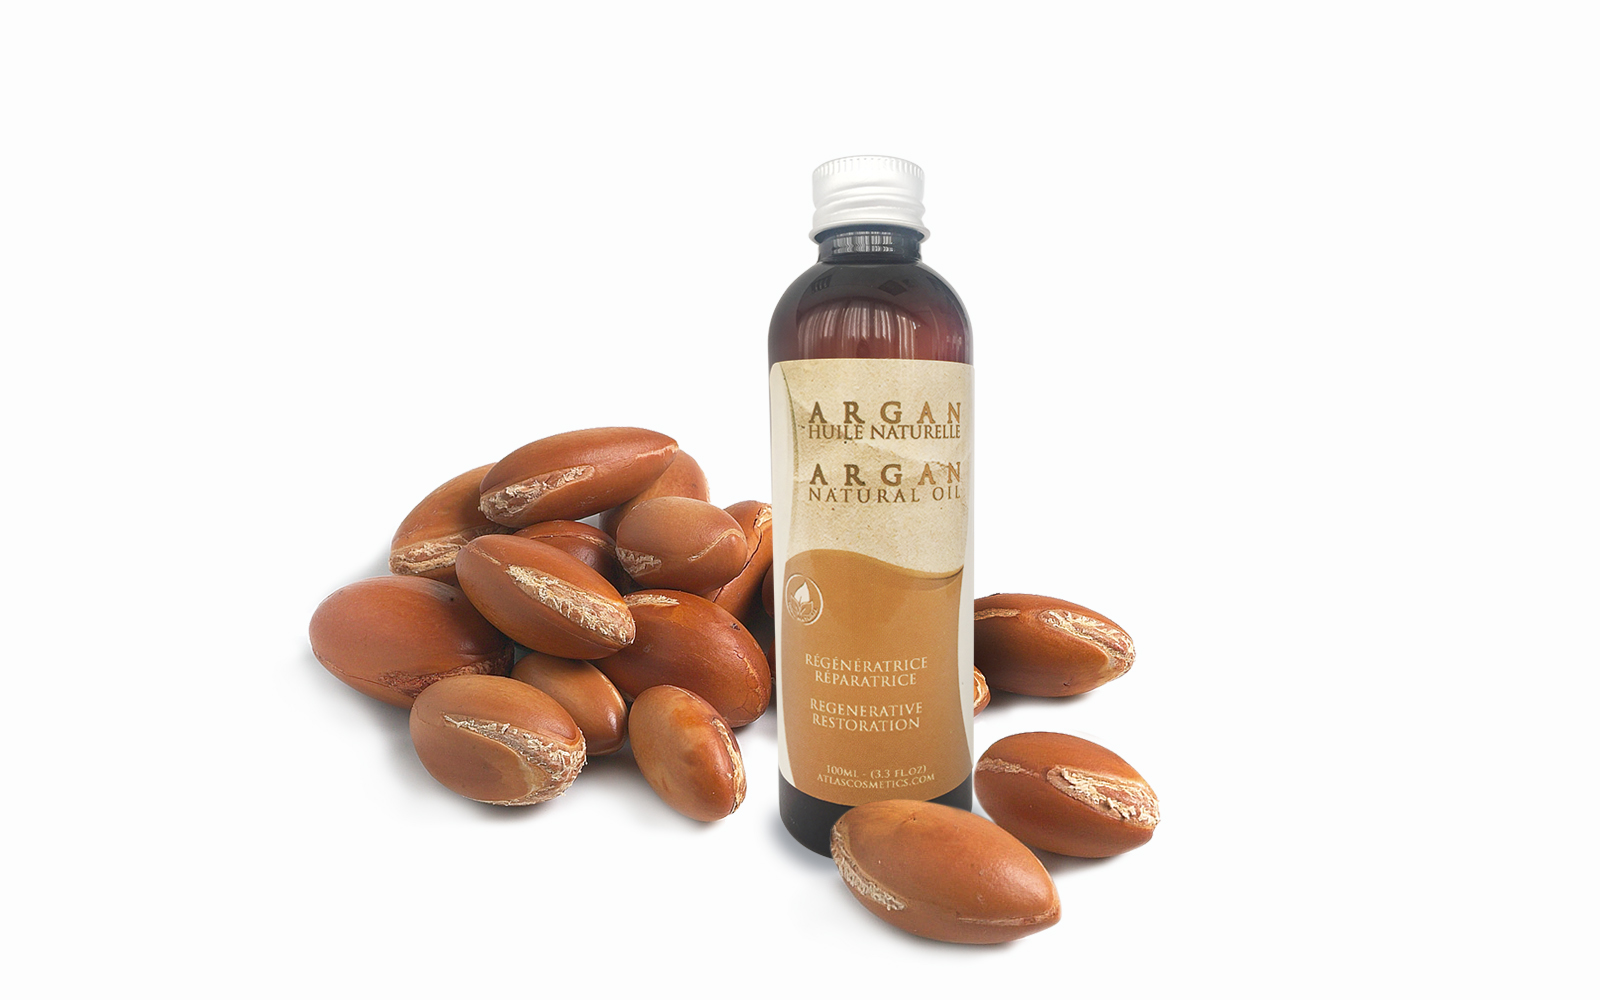 argan natural oil by atlas cosmetics